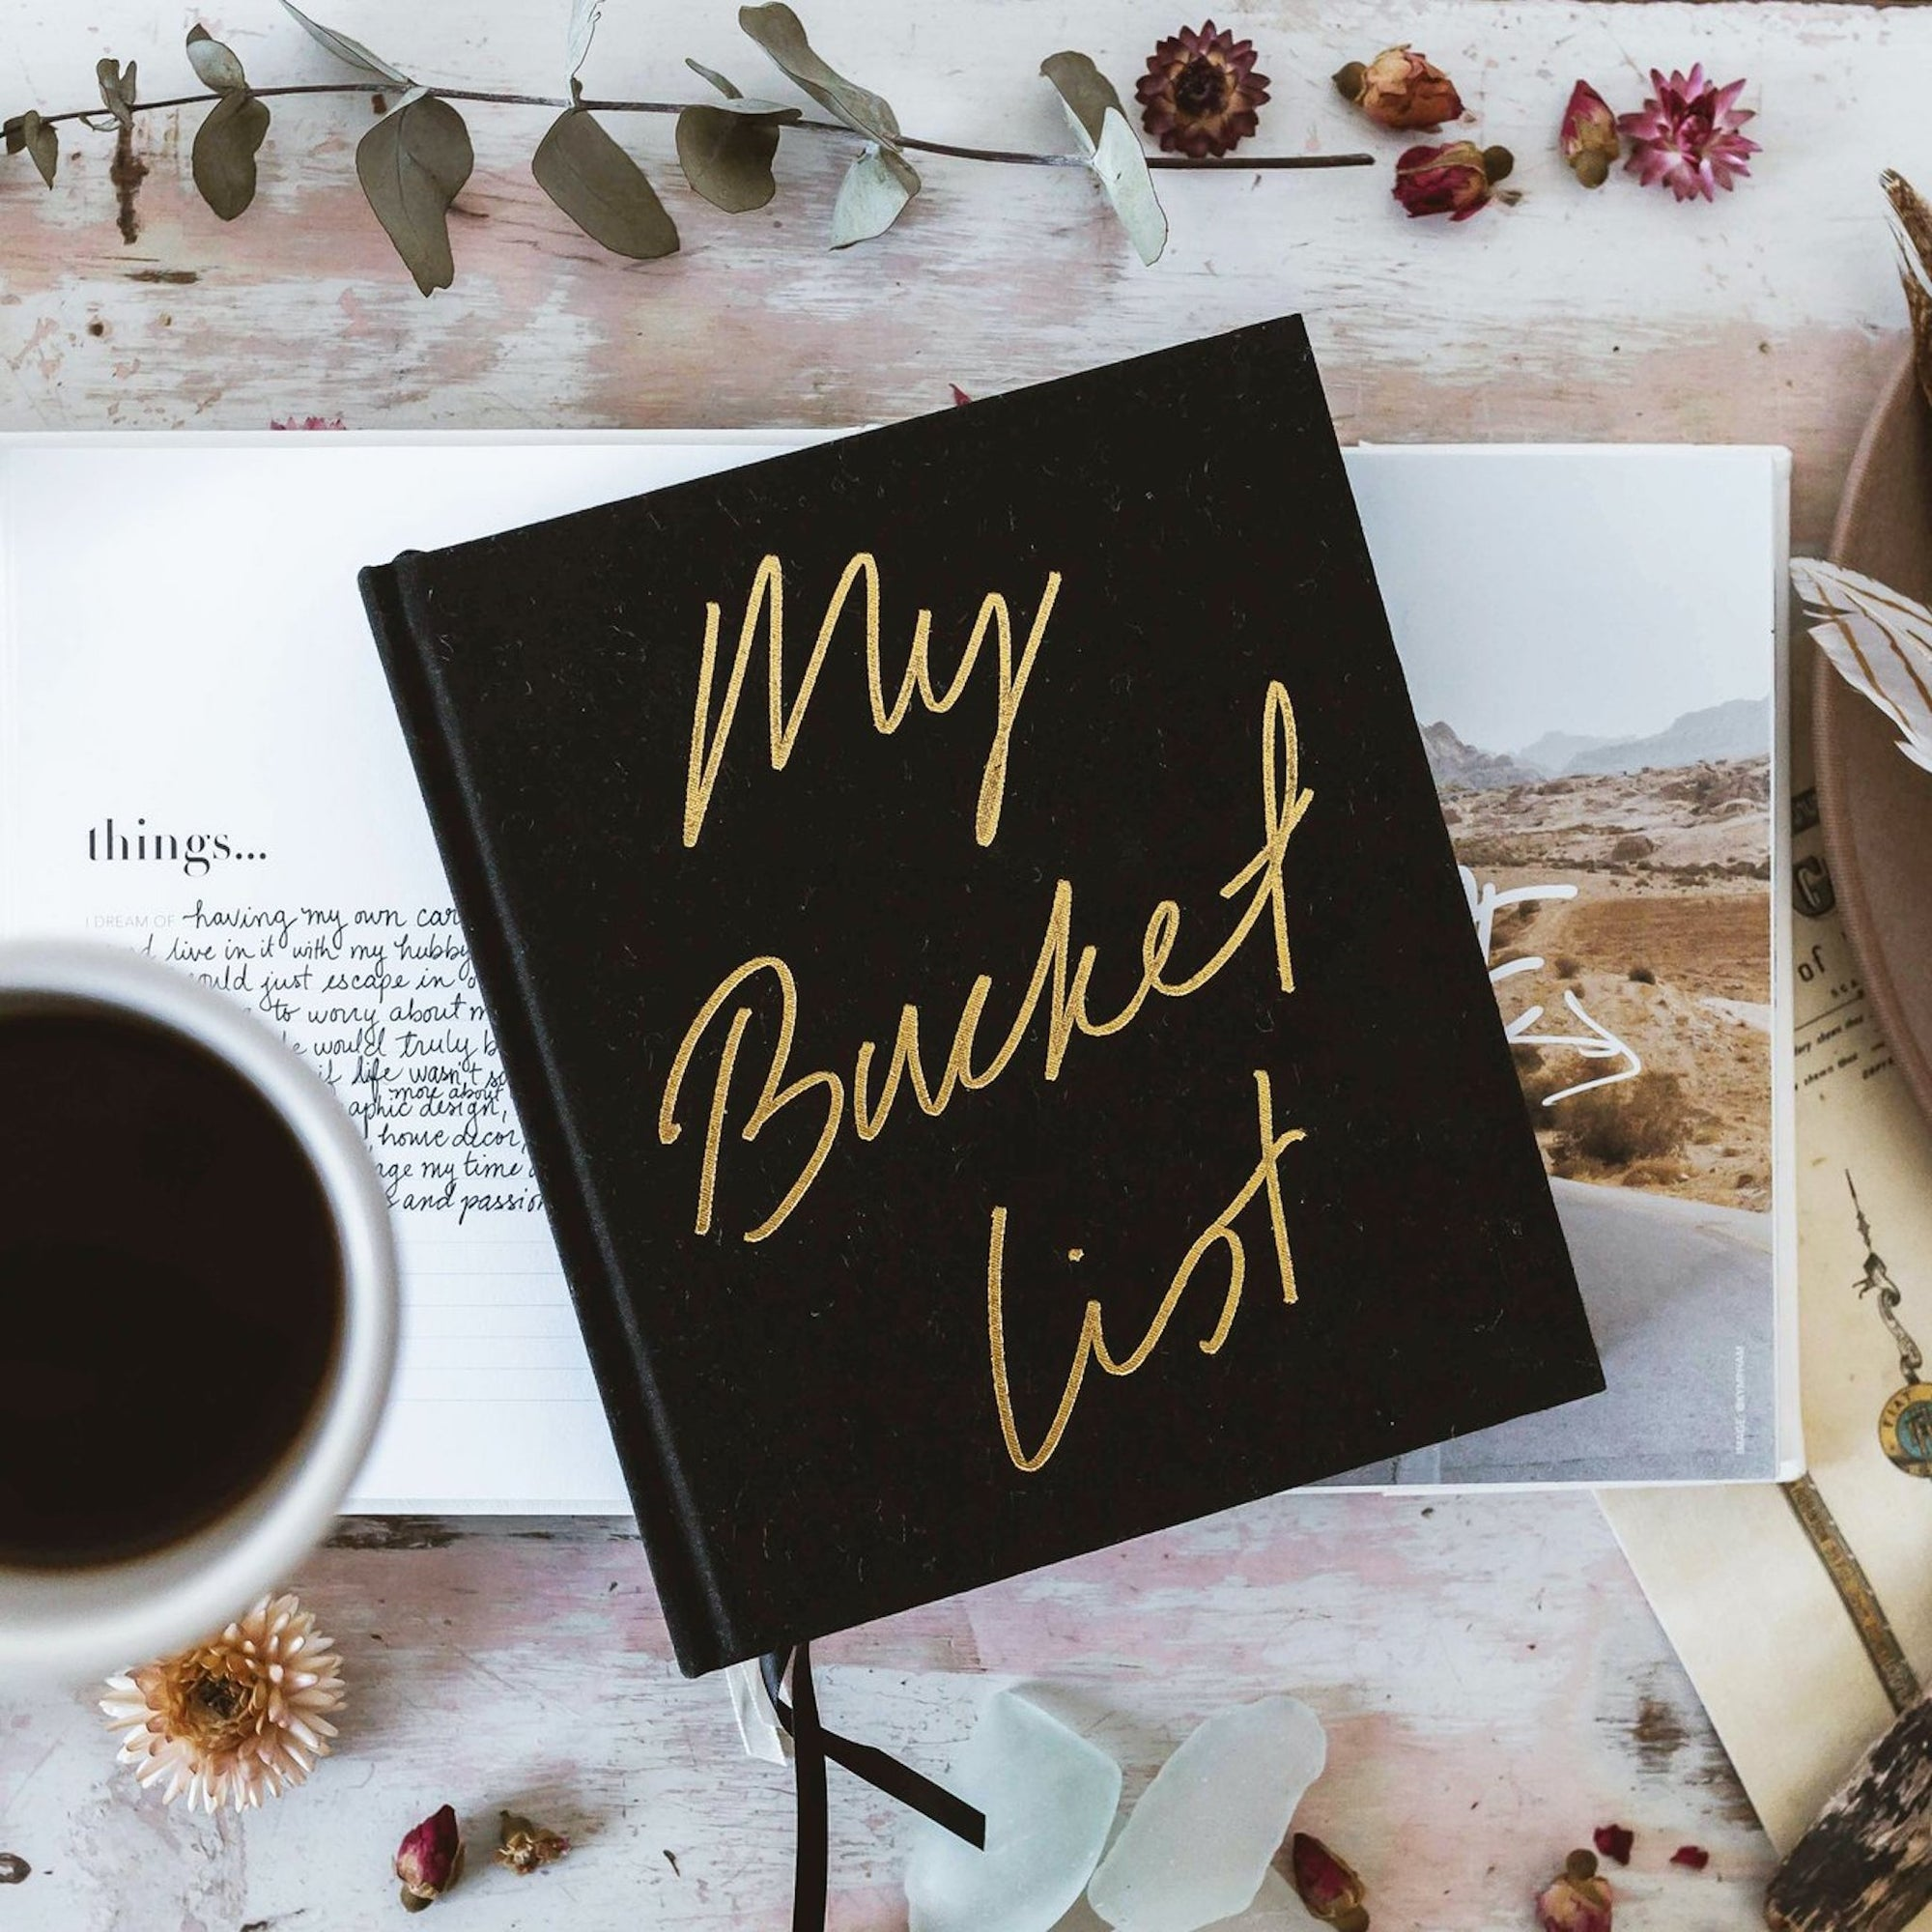 My Bucket List Journal